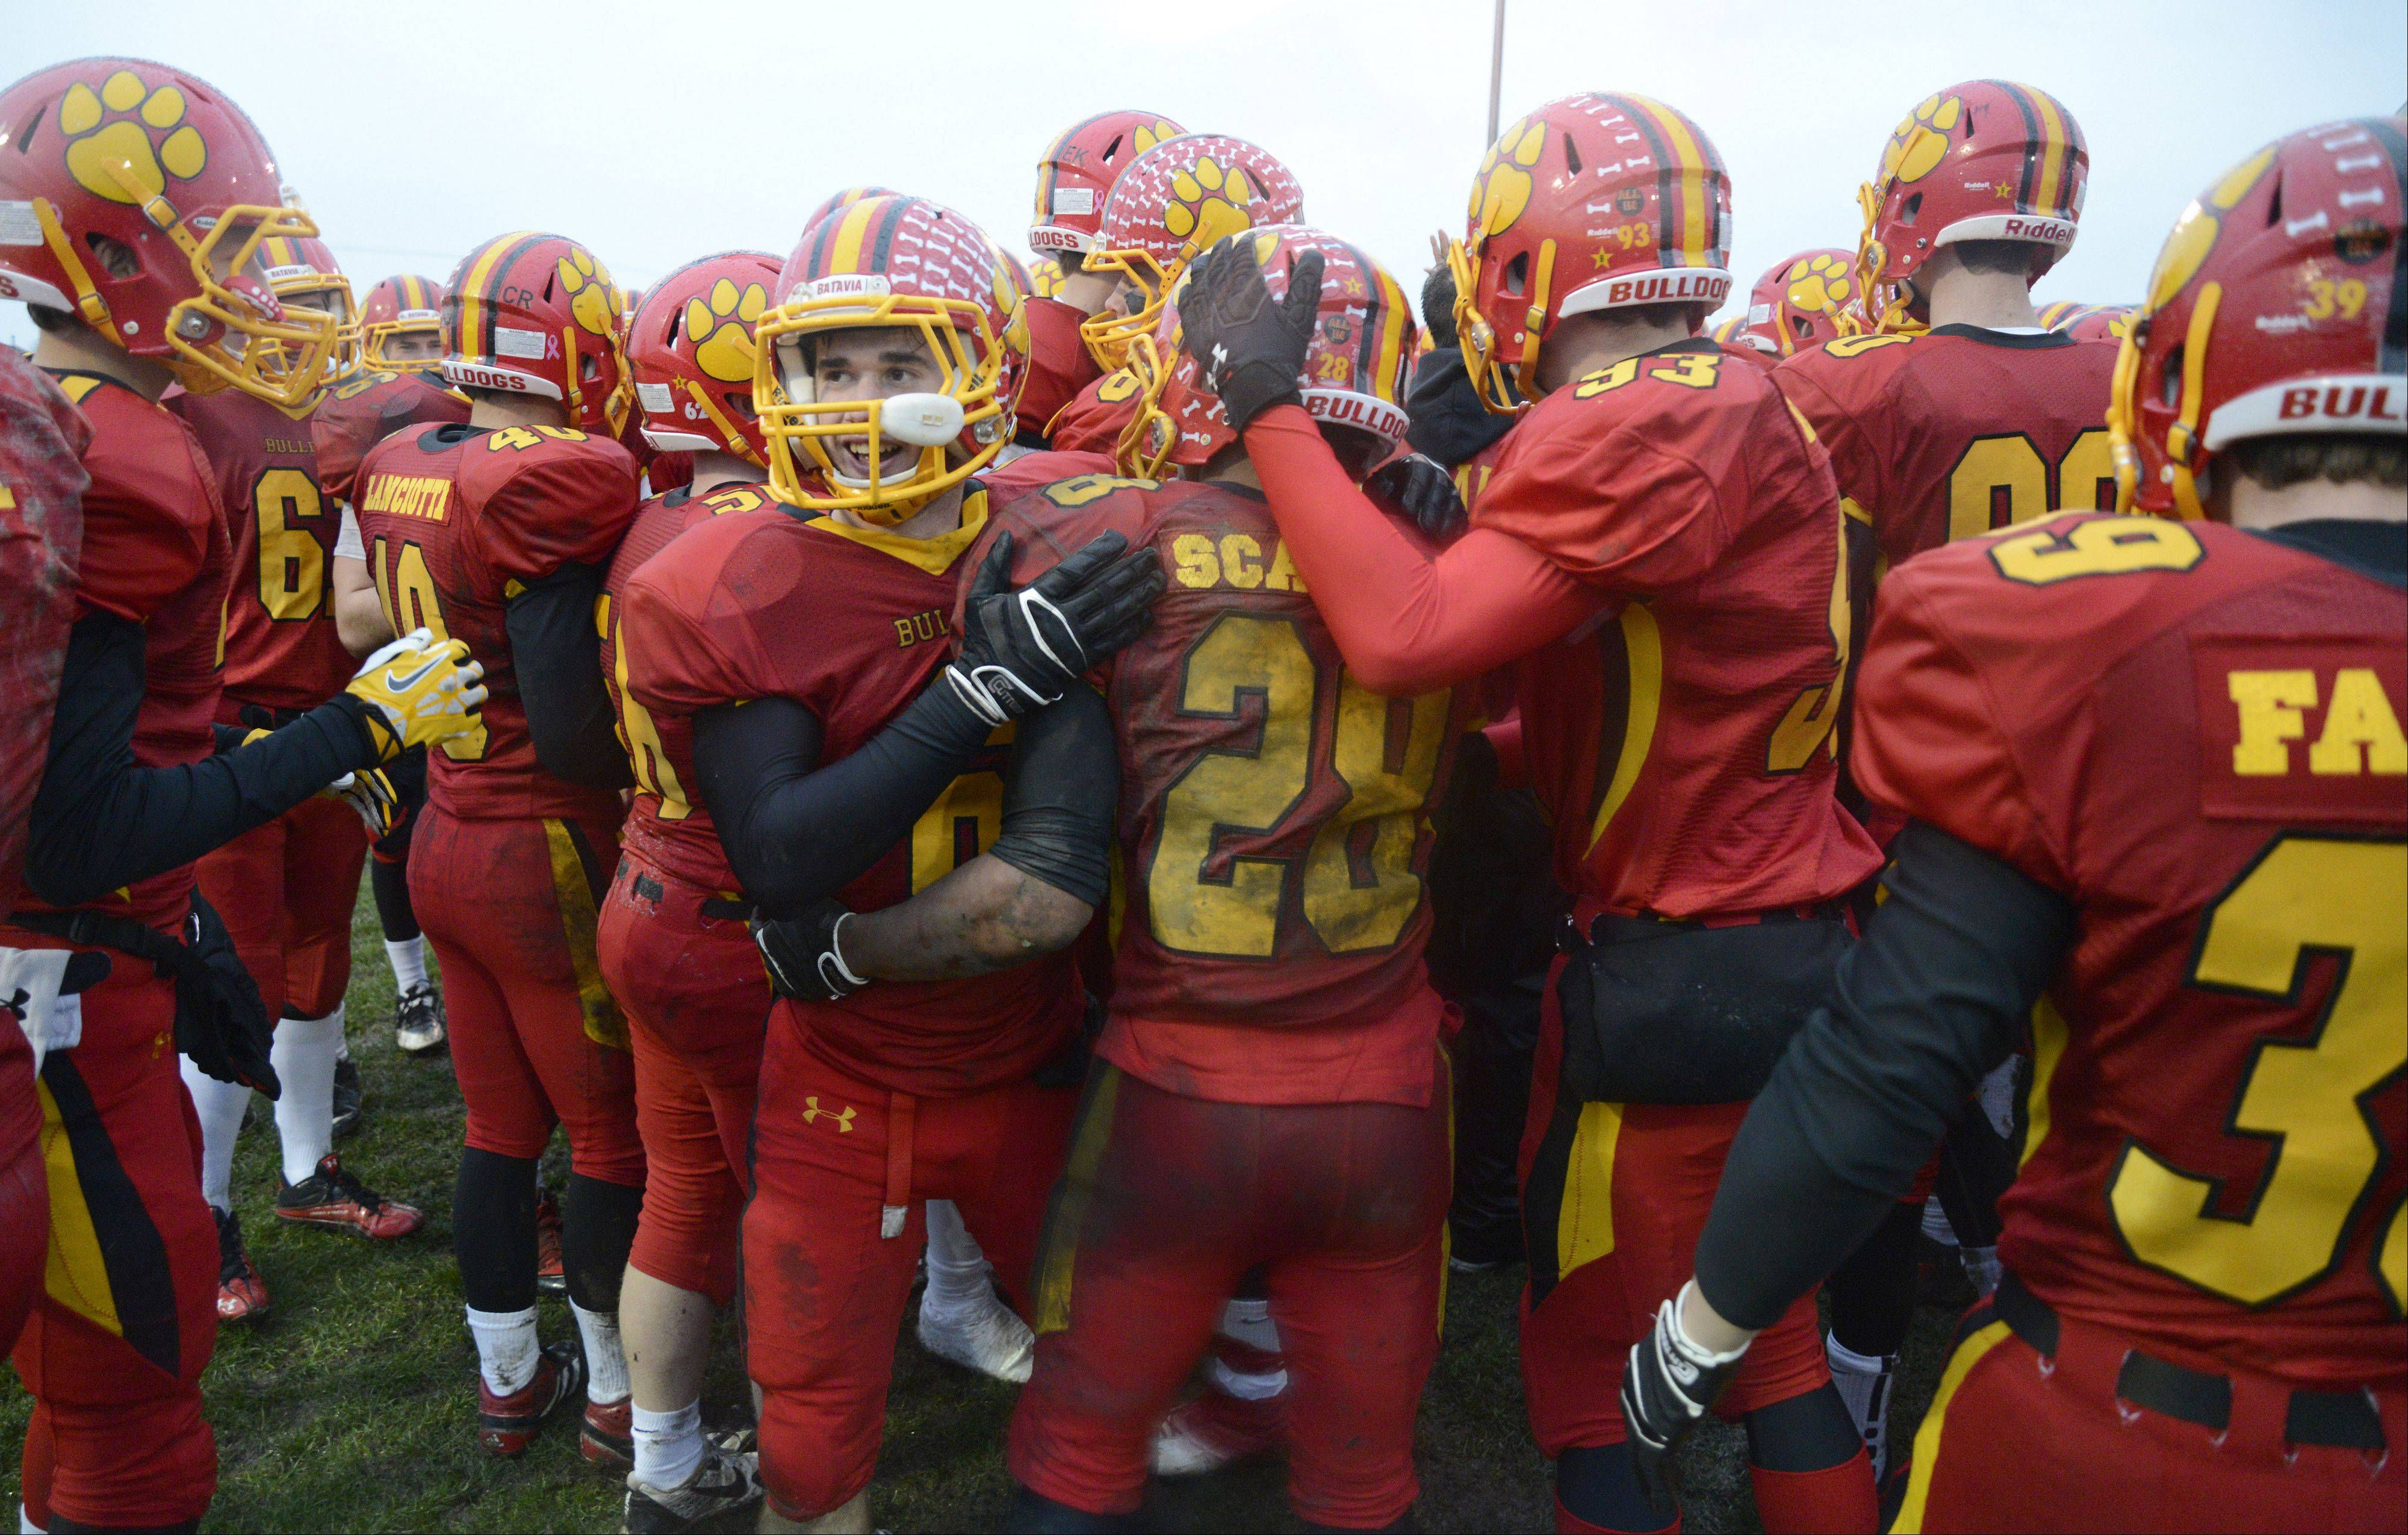 Batavia's Rourke Mullins (facing) walks away from the huddle after hugging Anthony Scaccia and Nate Kearney after their Class 6A quarterfinal victory over Lake Forest on Saturday, November 16.